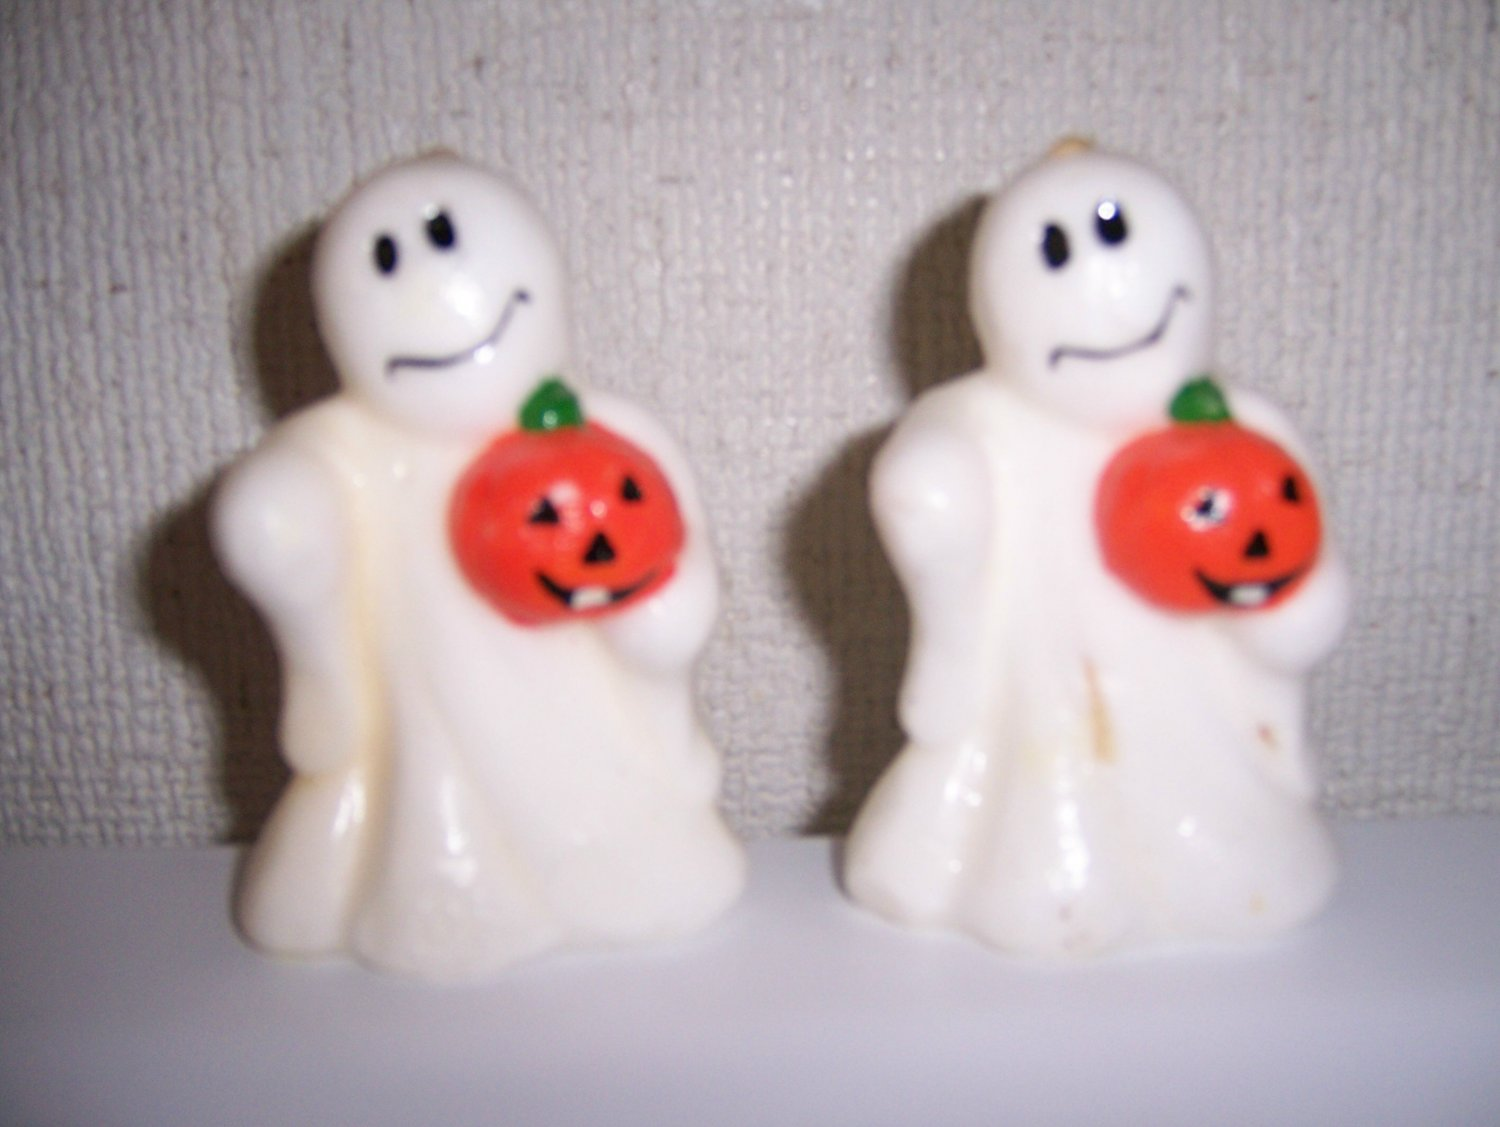 Set Two Friendly Ghosts For Halloween & Thanksgiving BNK583